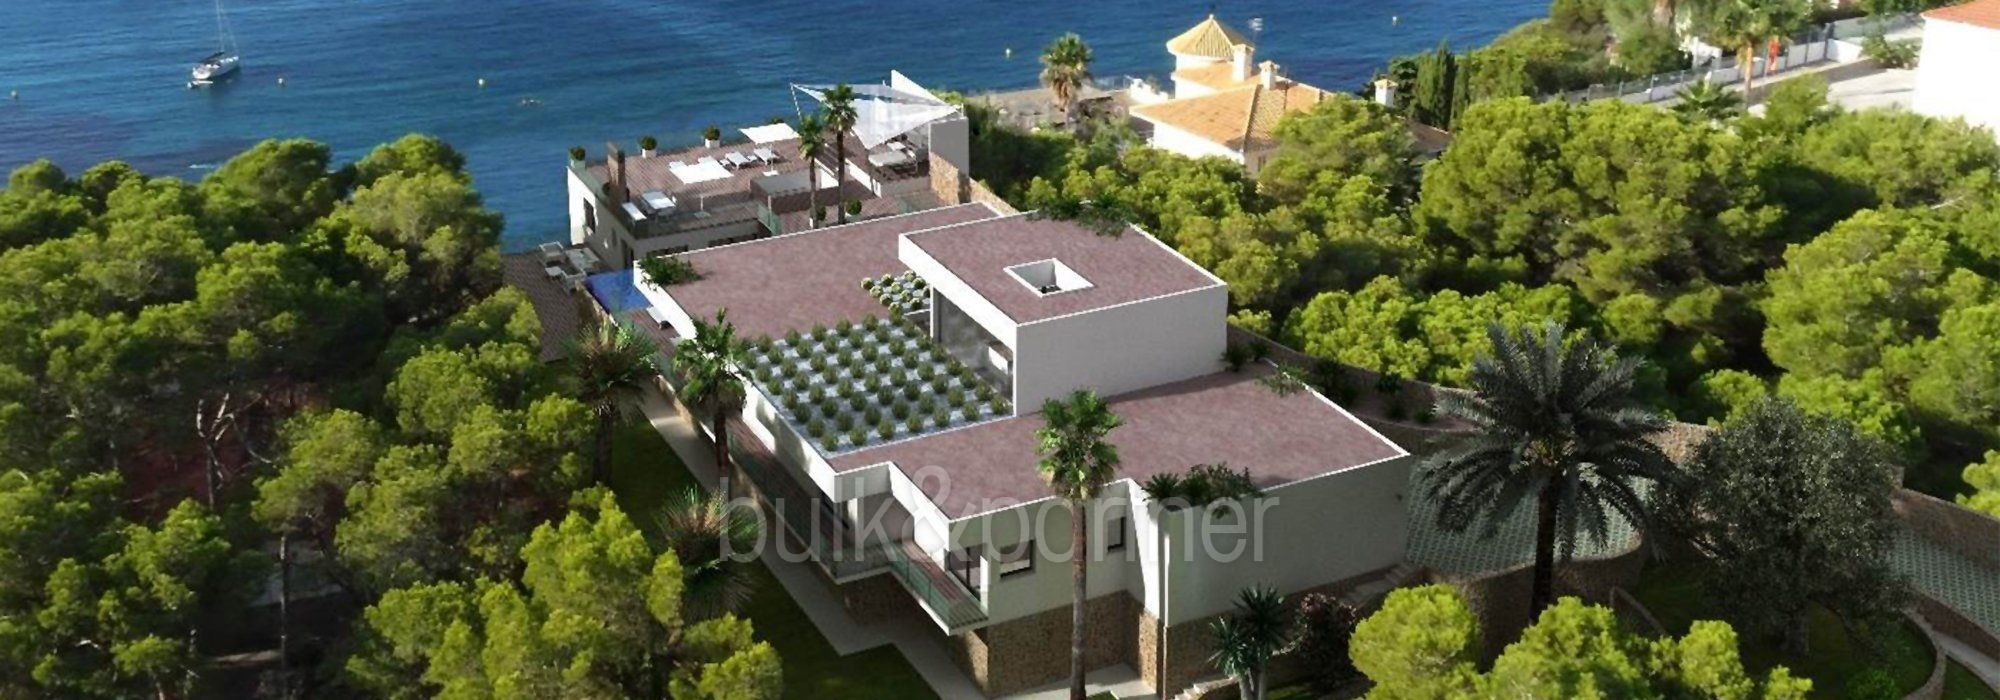 New build sea front luxury villa in Moraira